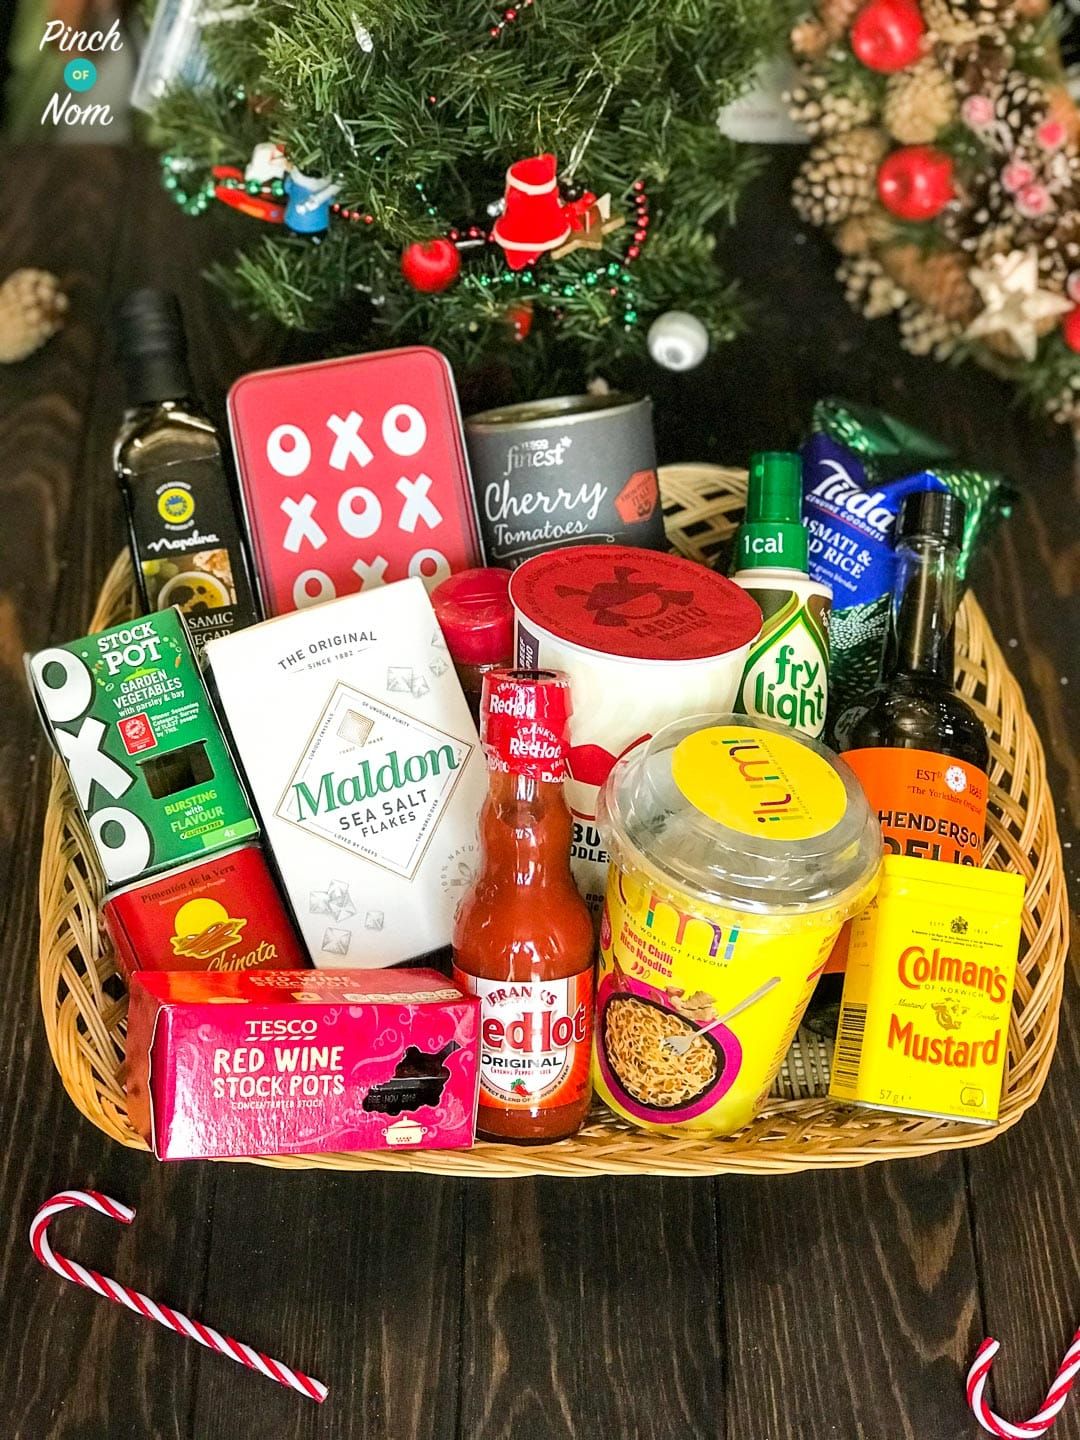 Something Spicy 2 - Slimming World Christmas Hampers | Slimming World